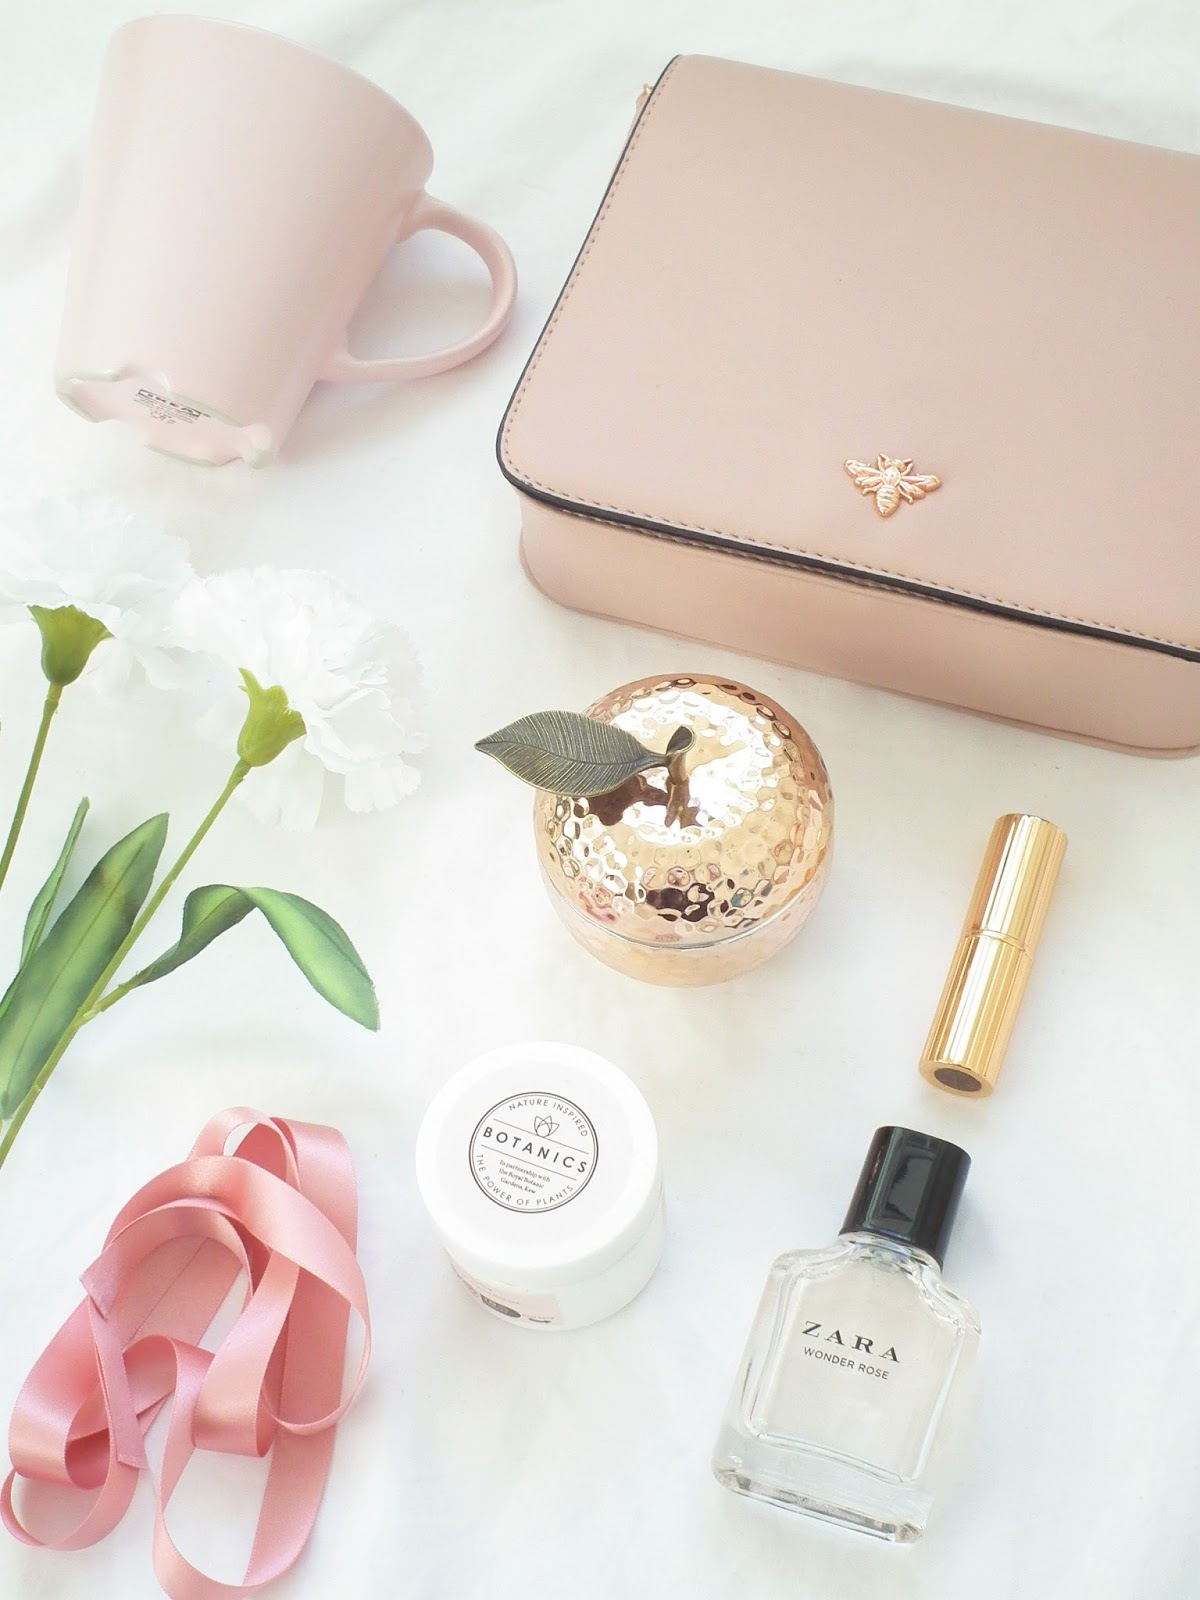 Styling Flatlay Photos - A Step by Step Guide